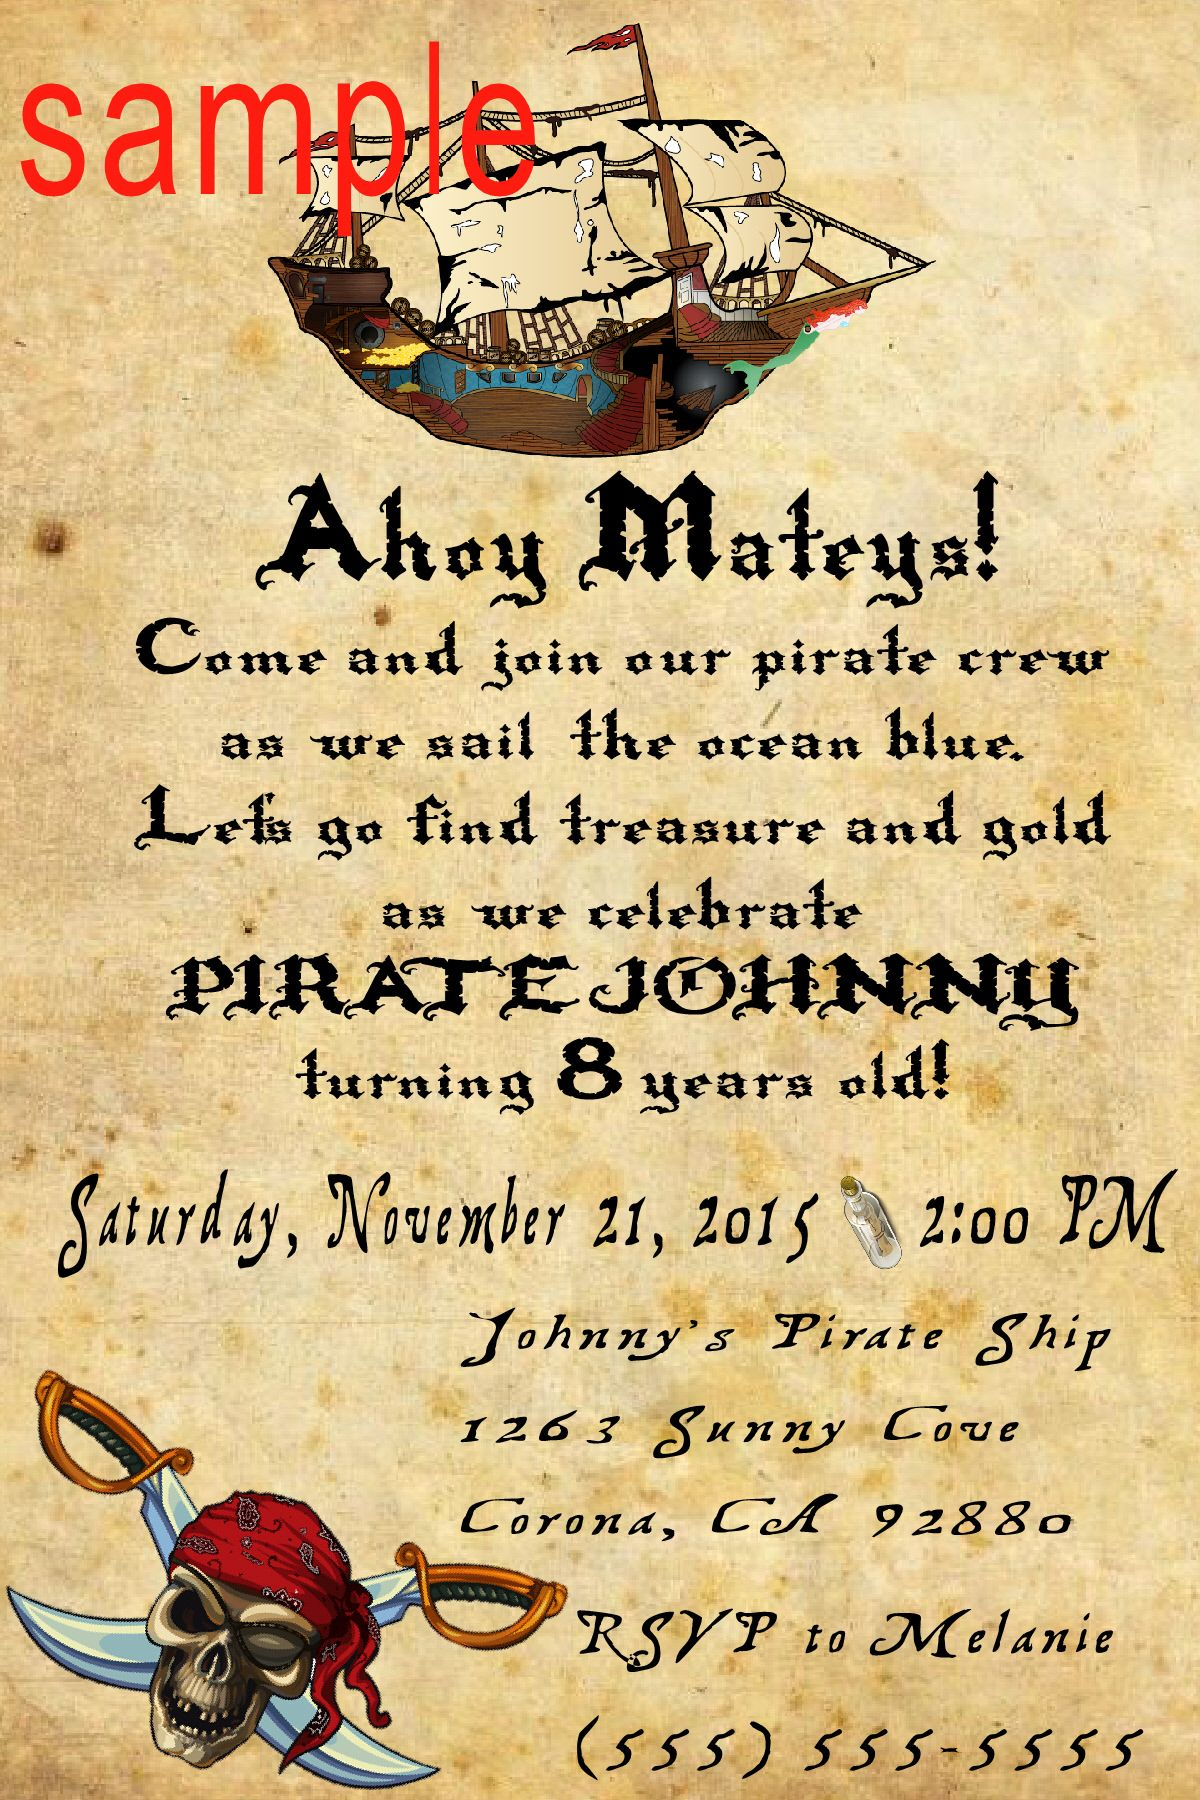 pirate birthday invitation click on the image twice to place orders